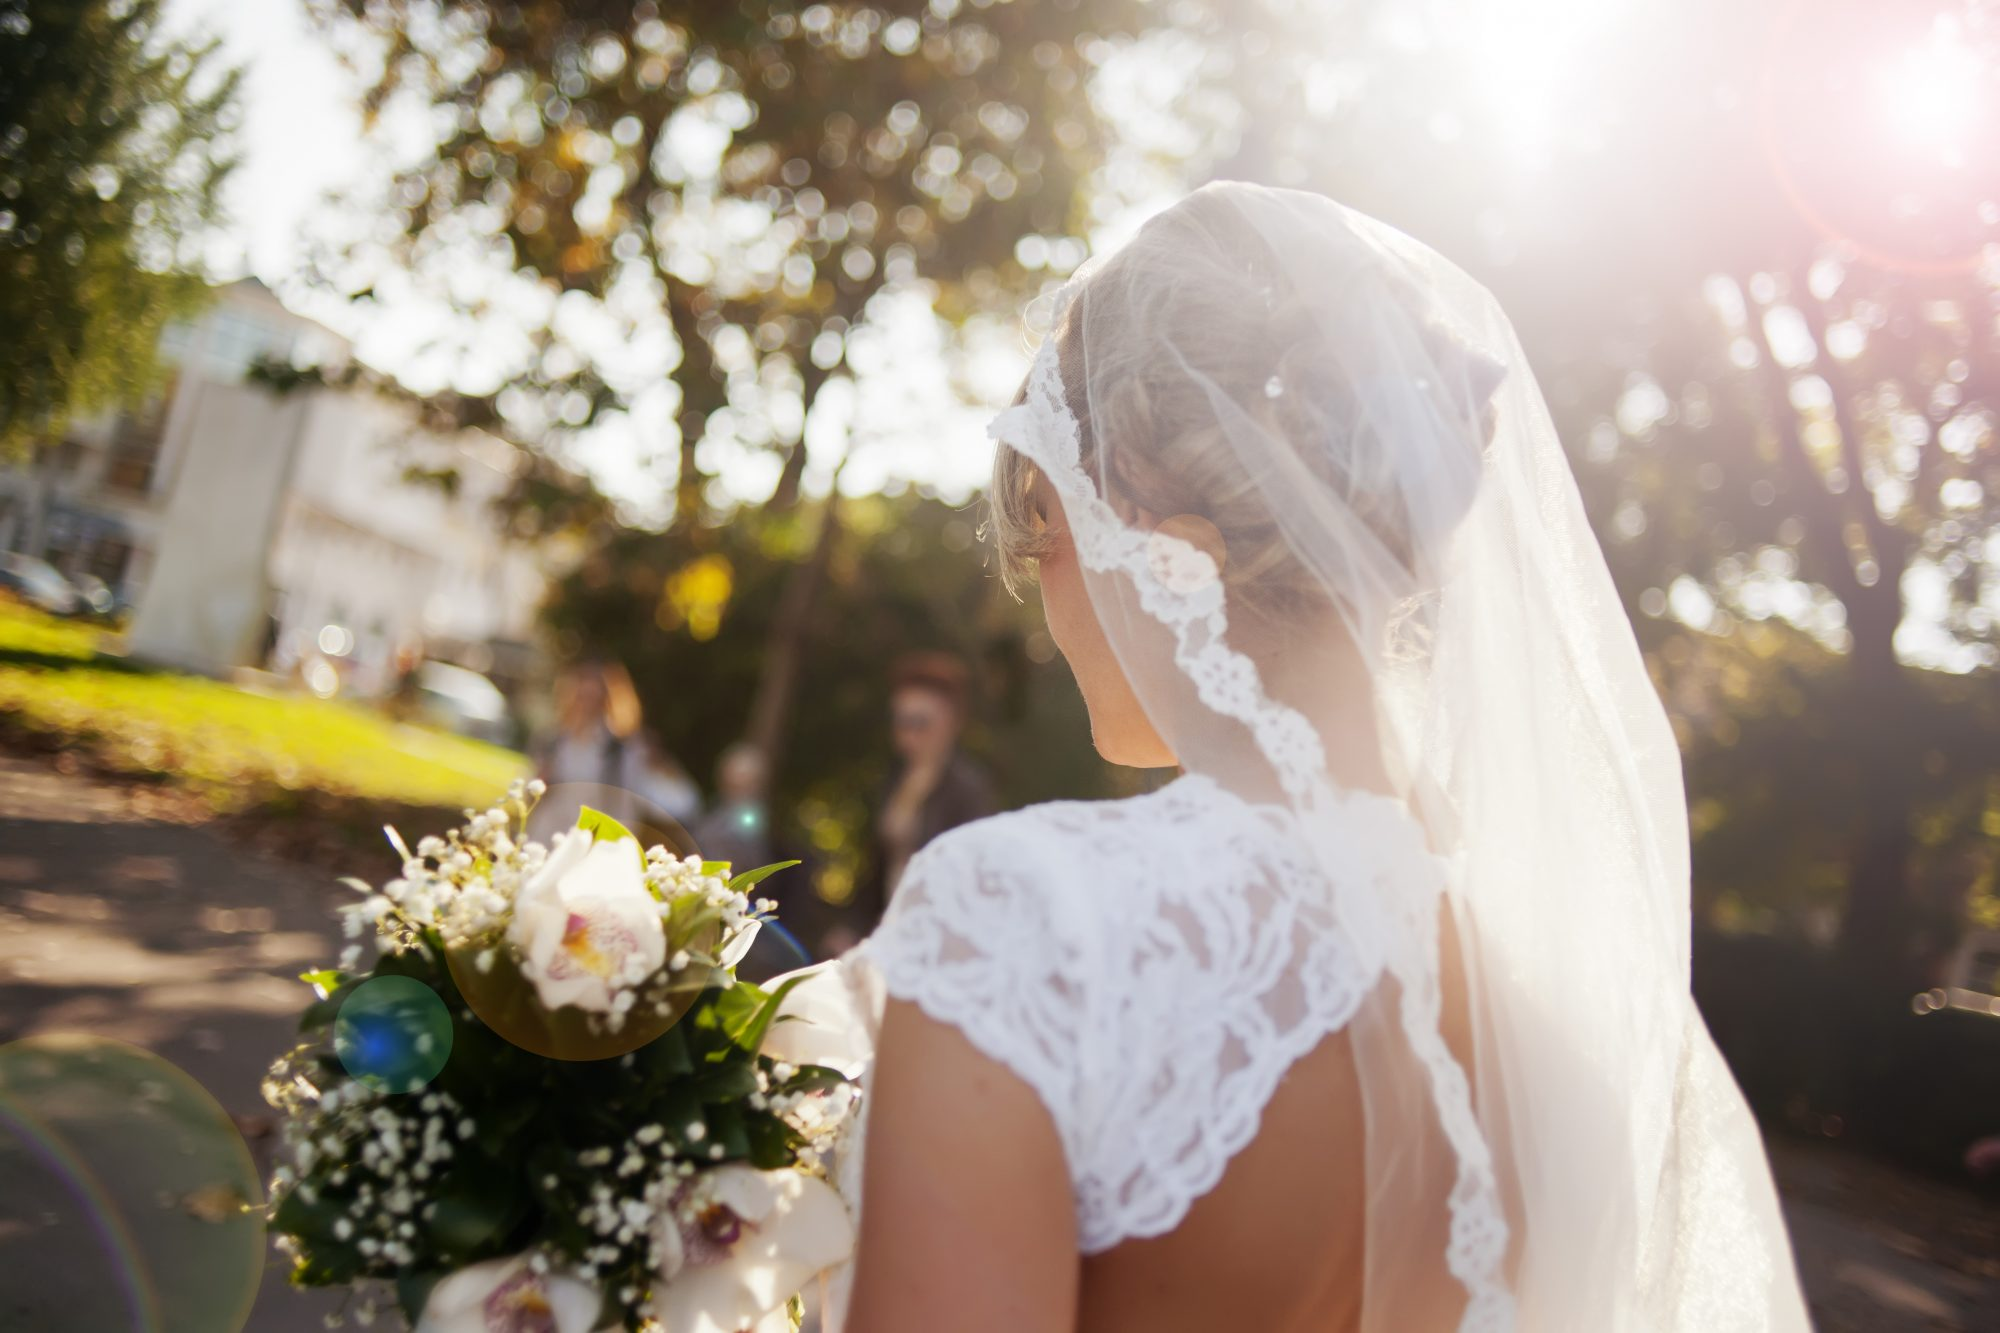 Bride with Veil and Open Back Dress